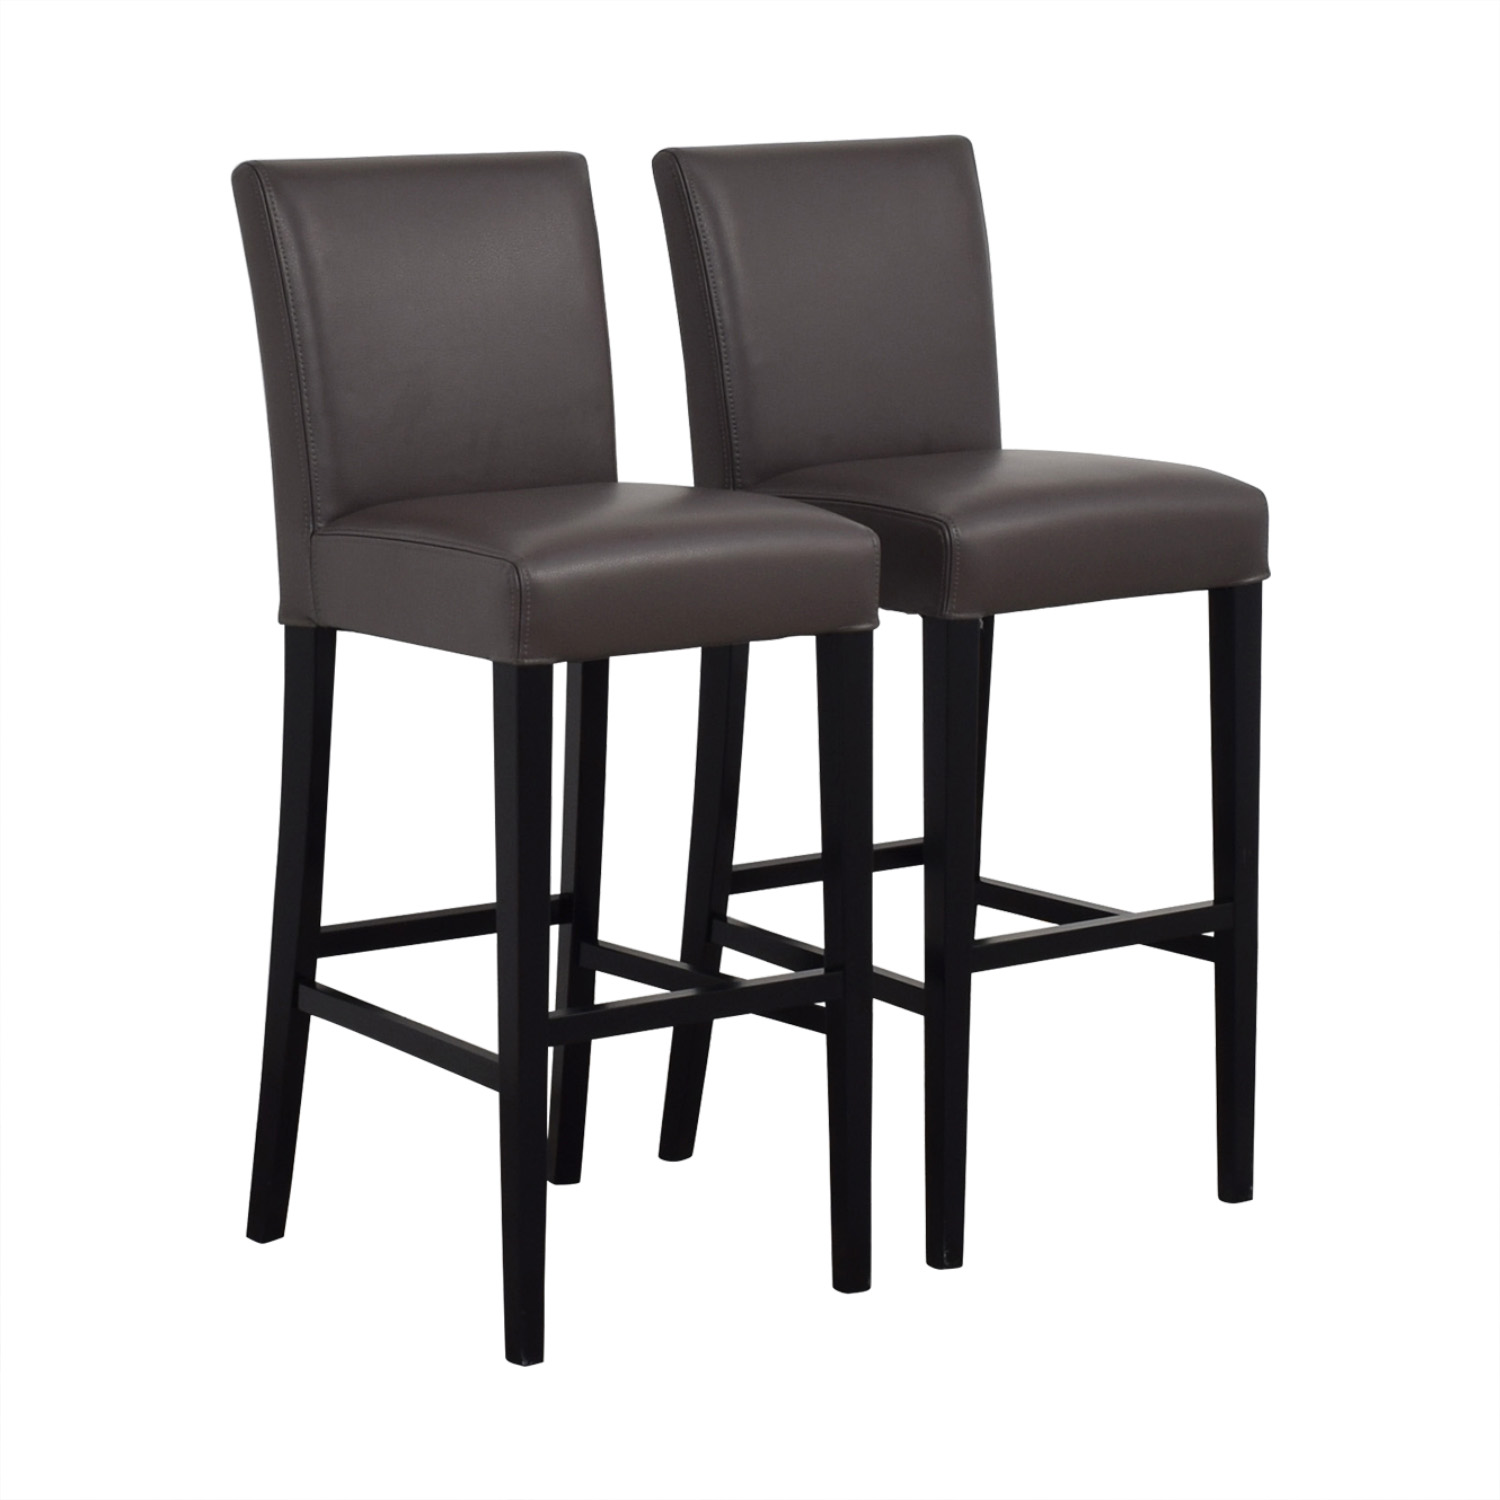 Crate & Barrel Crate & Barrel Lowe Smoke Leather Bar Stools price